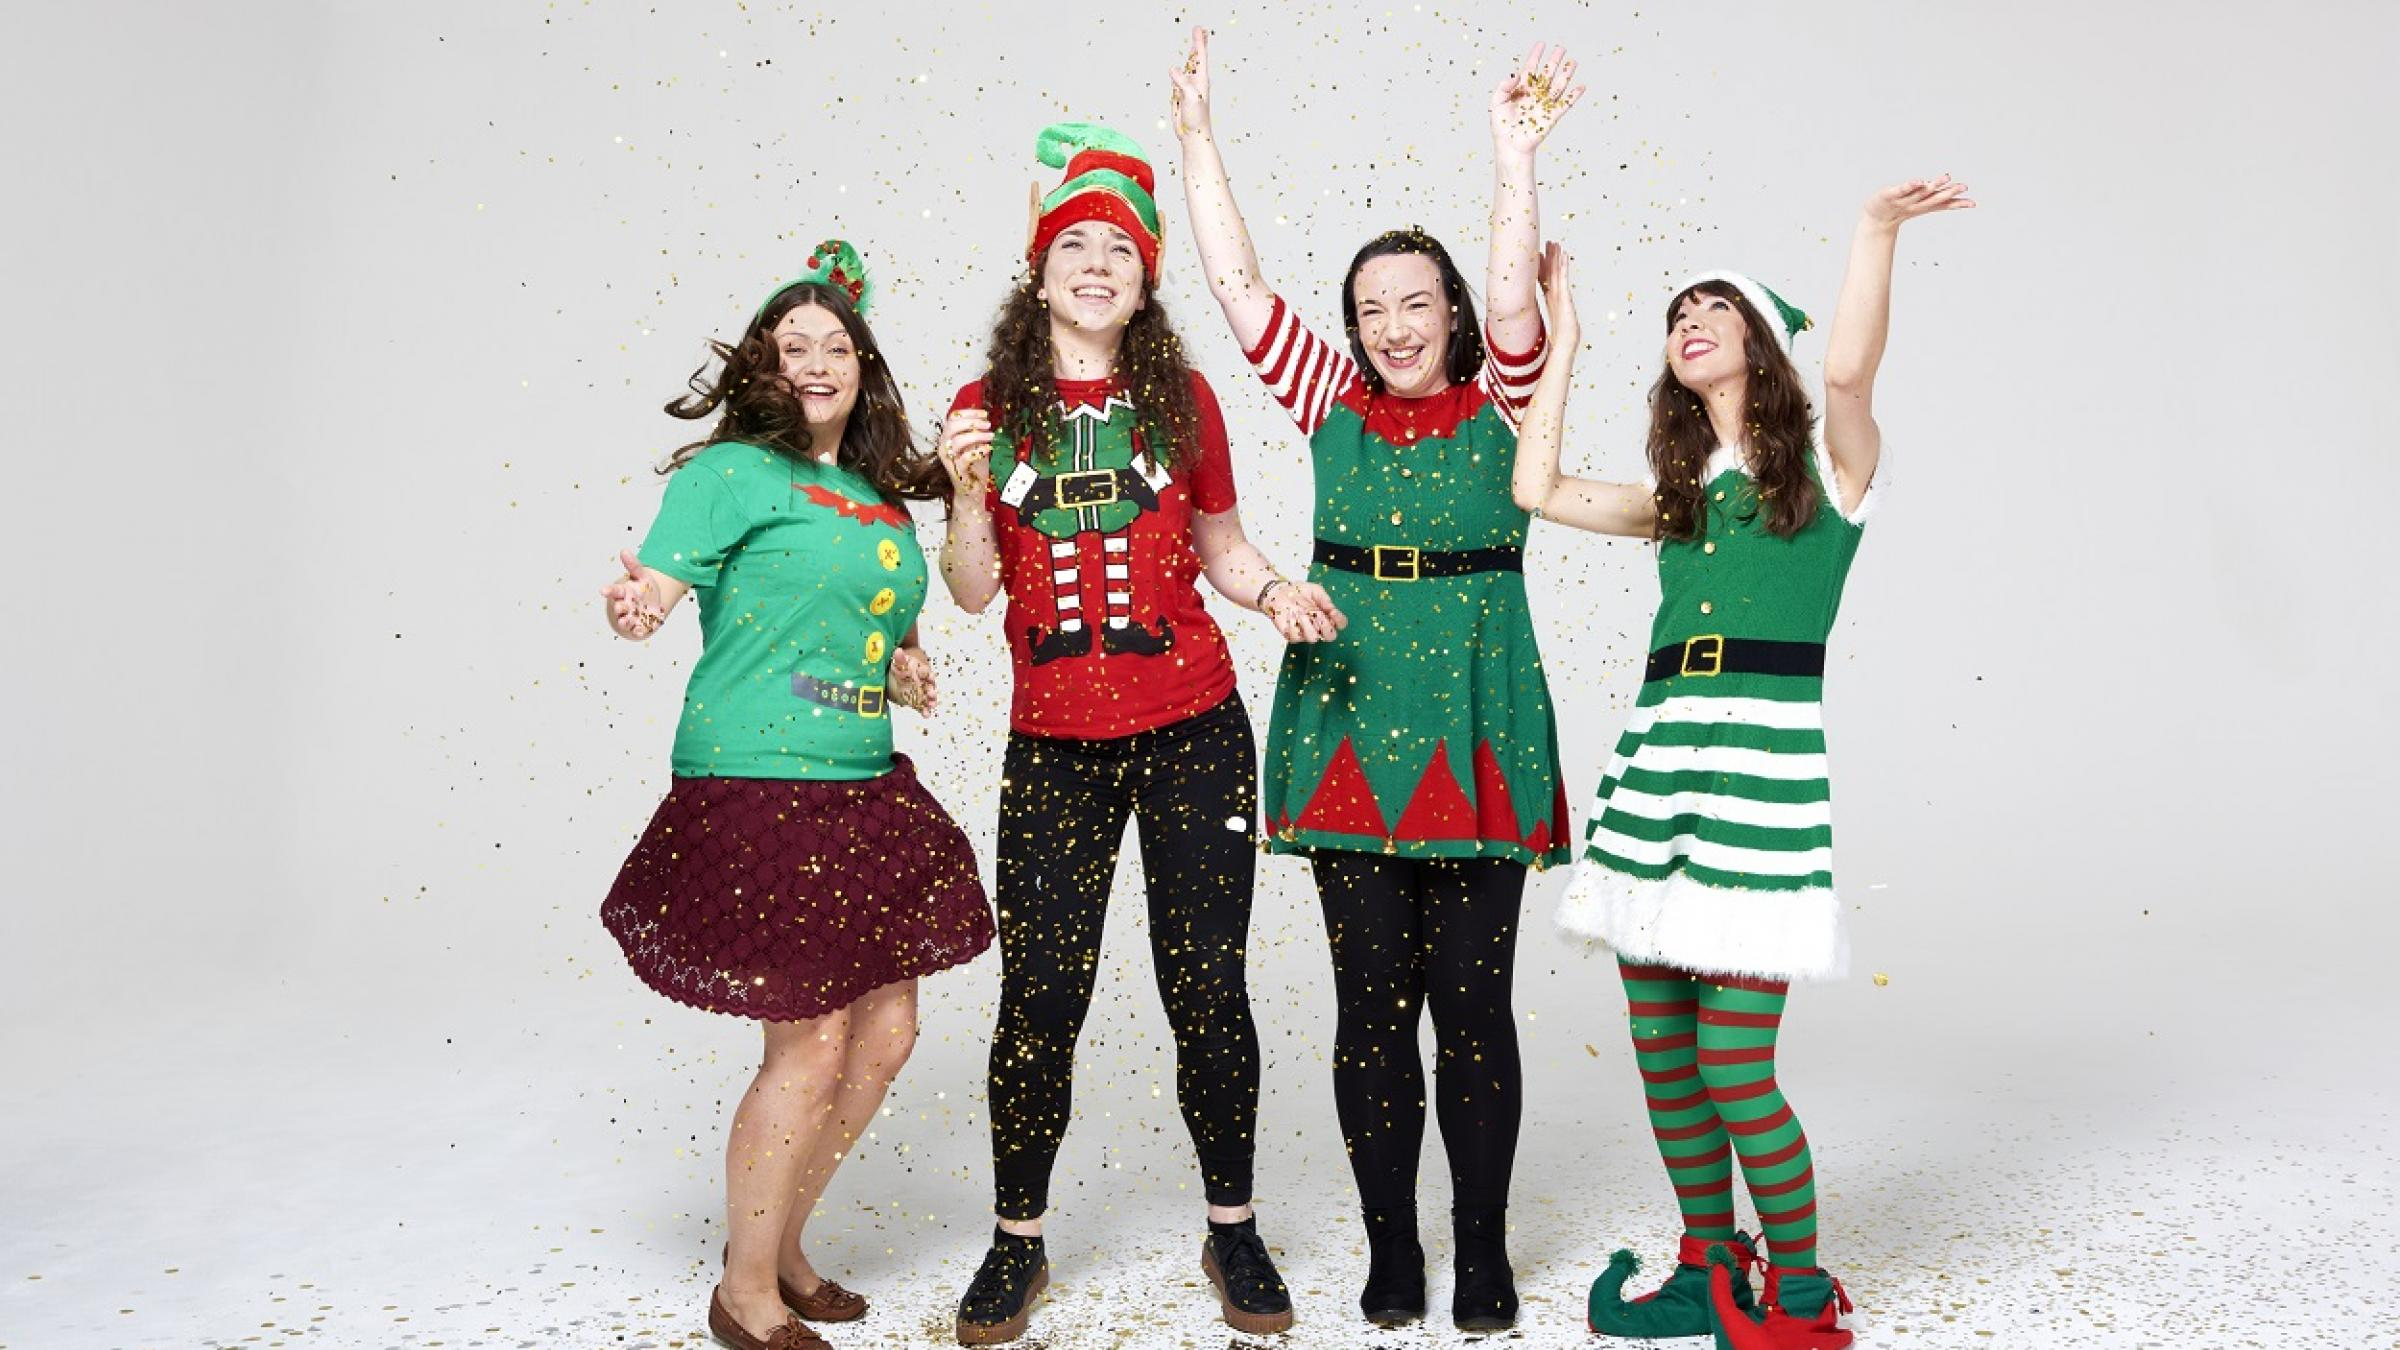 Four smiling women dressed up for Elf Day